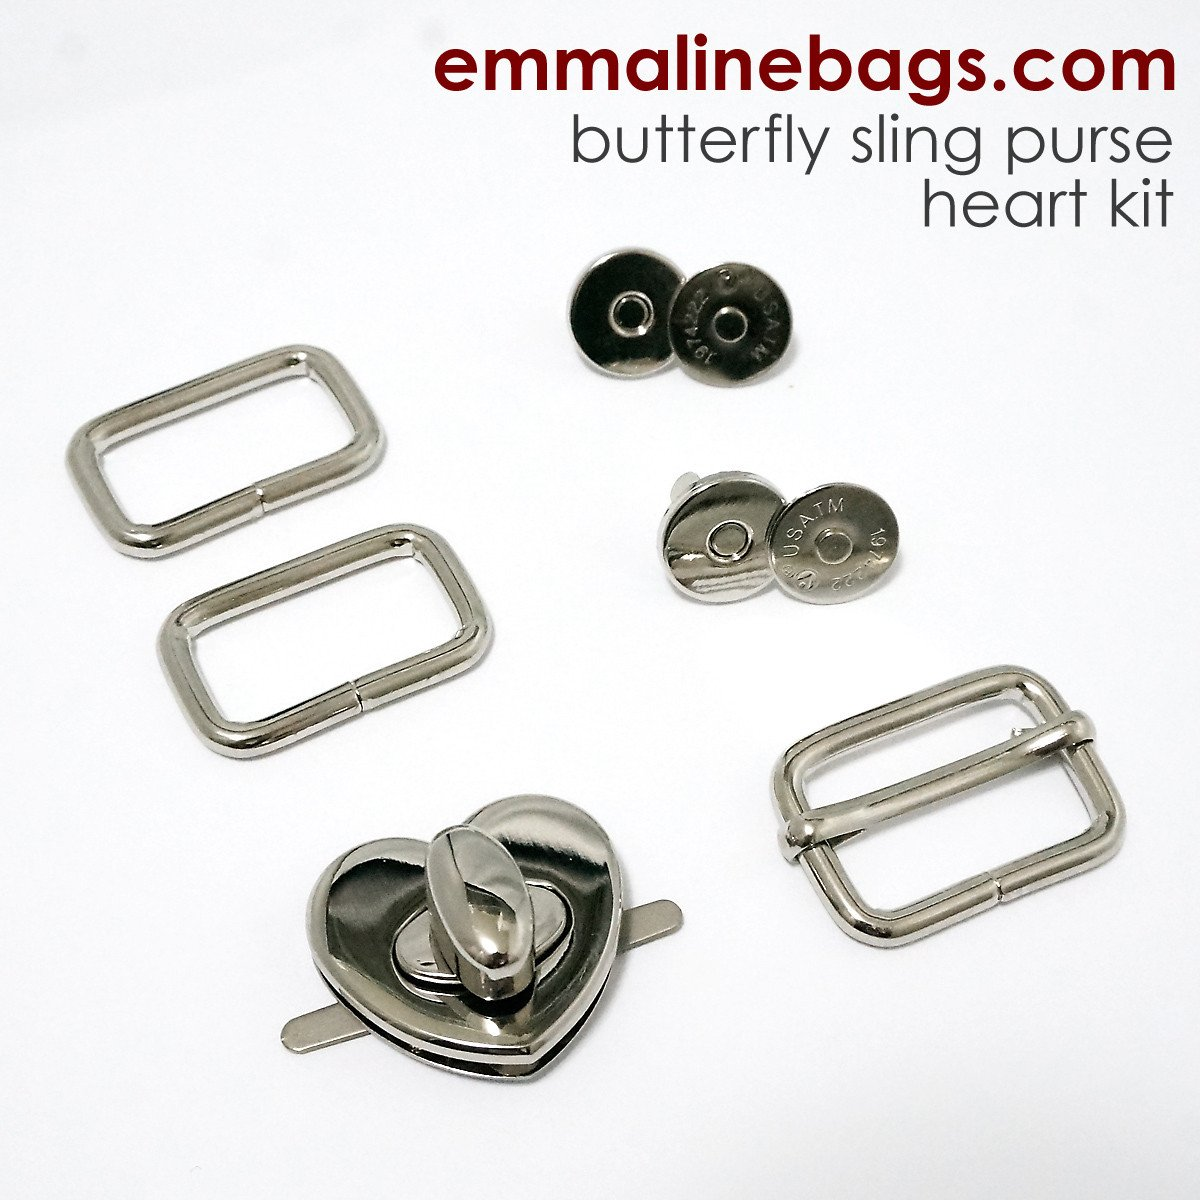 Emmaline - the Butterfly Sling Hardware Kit - Heart Lock Nickel